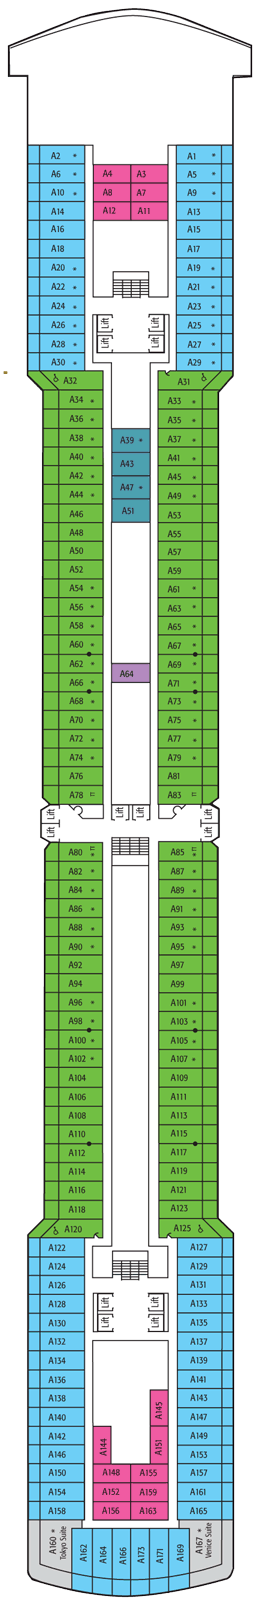 Deck plan m s arcadia before 22 04 2015 for Arcadia deck plans